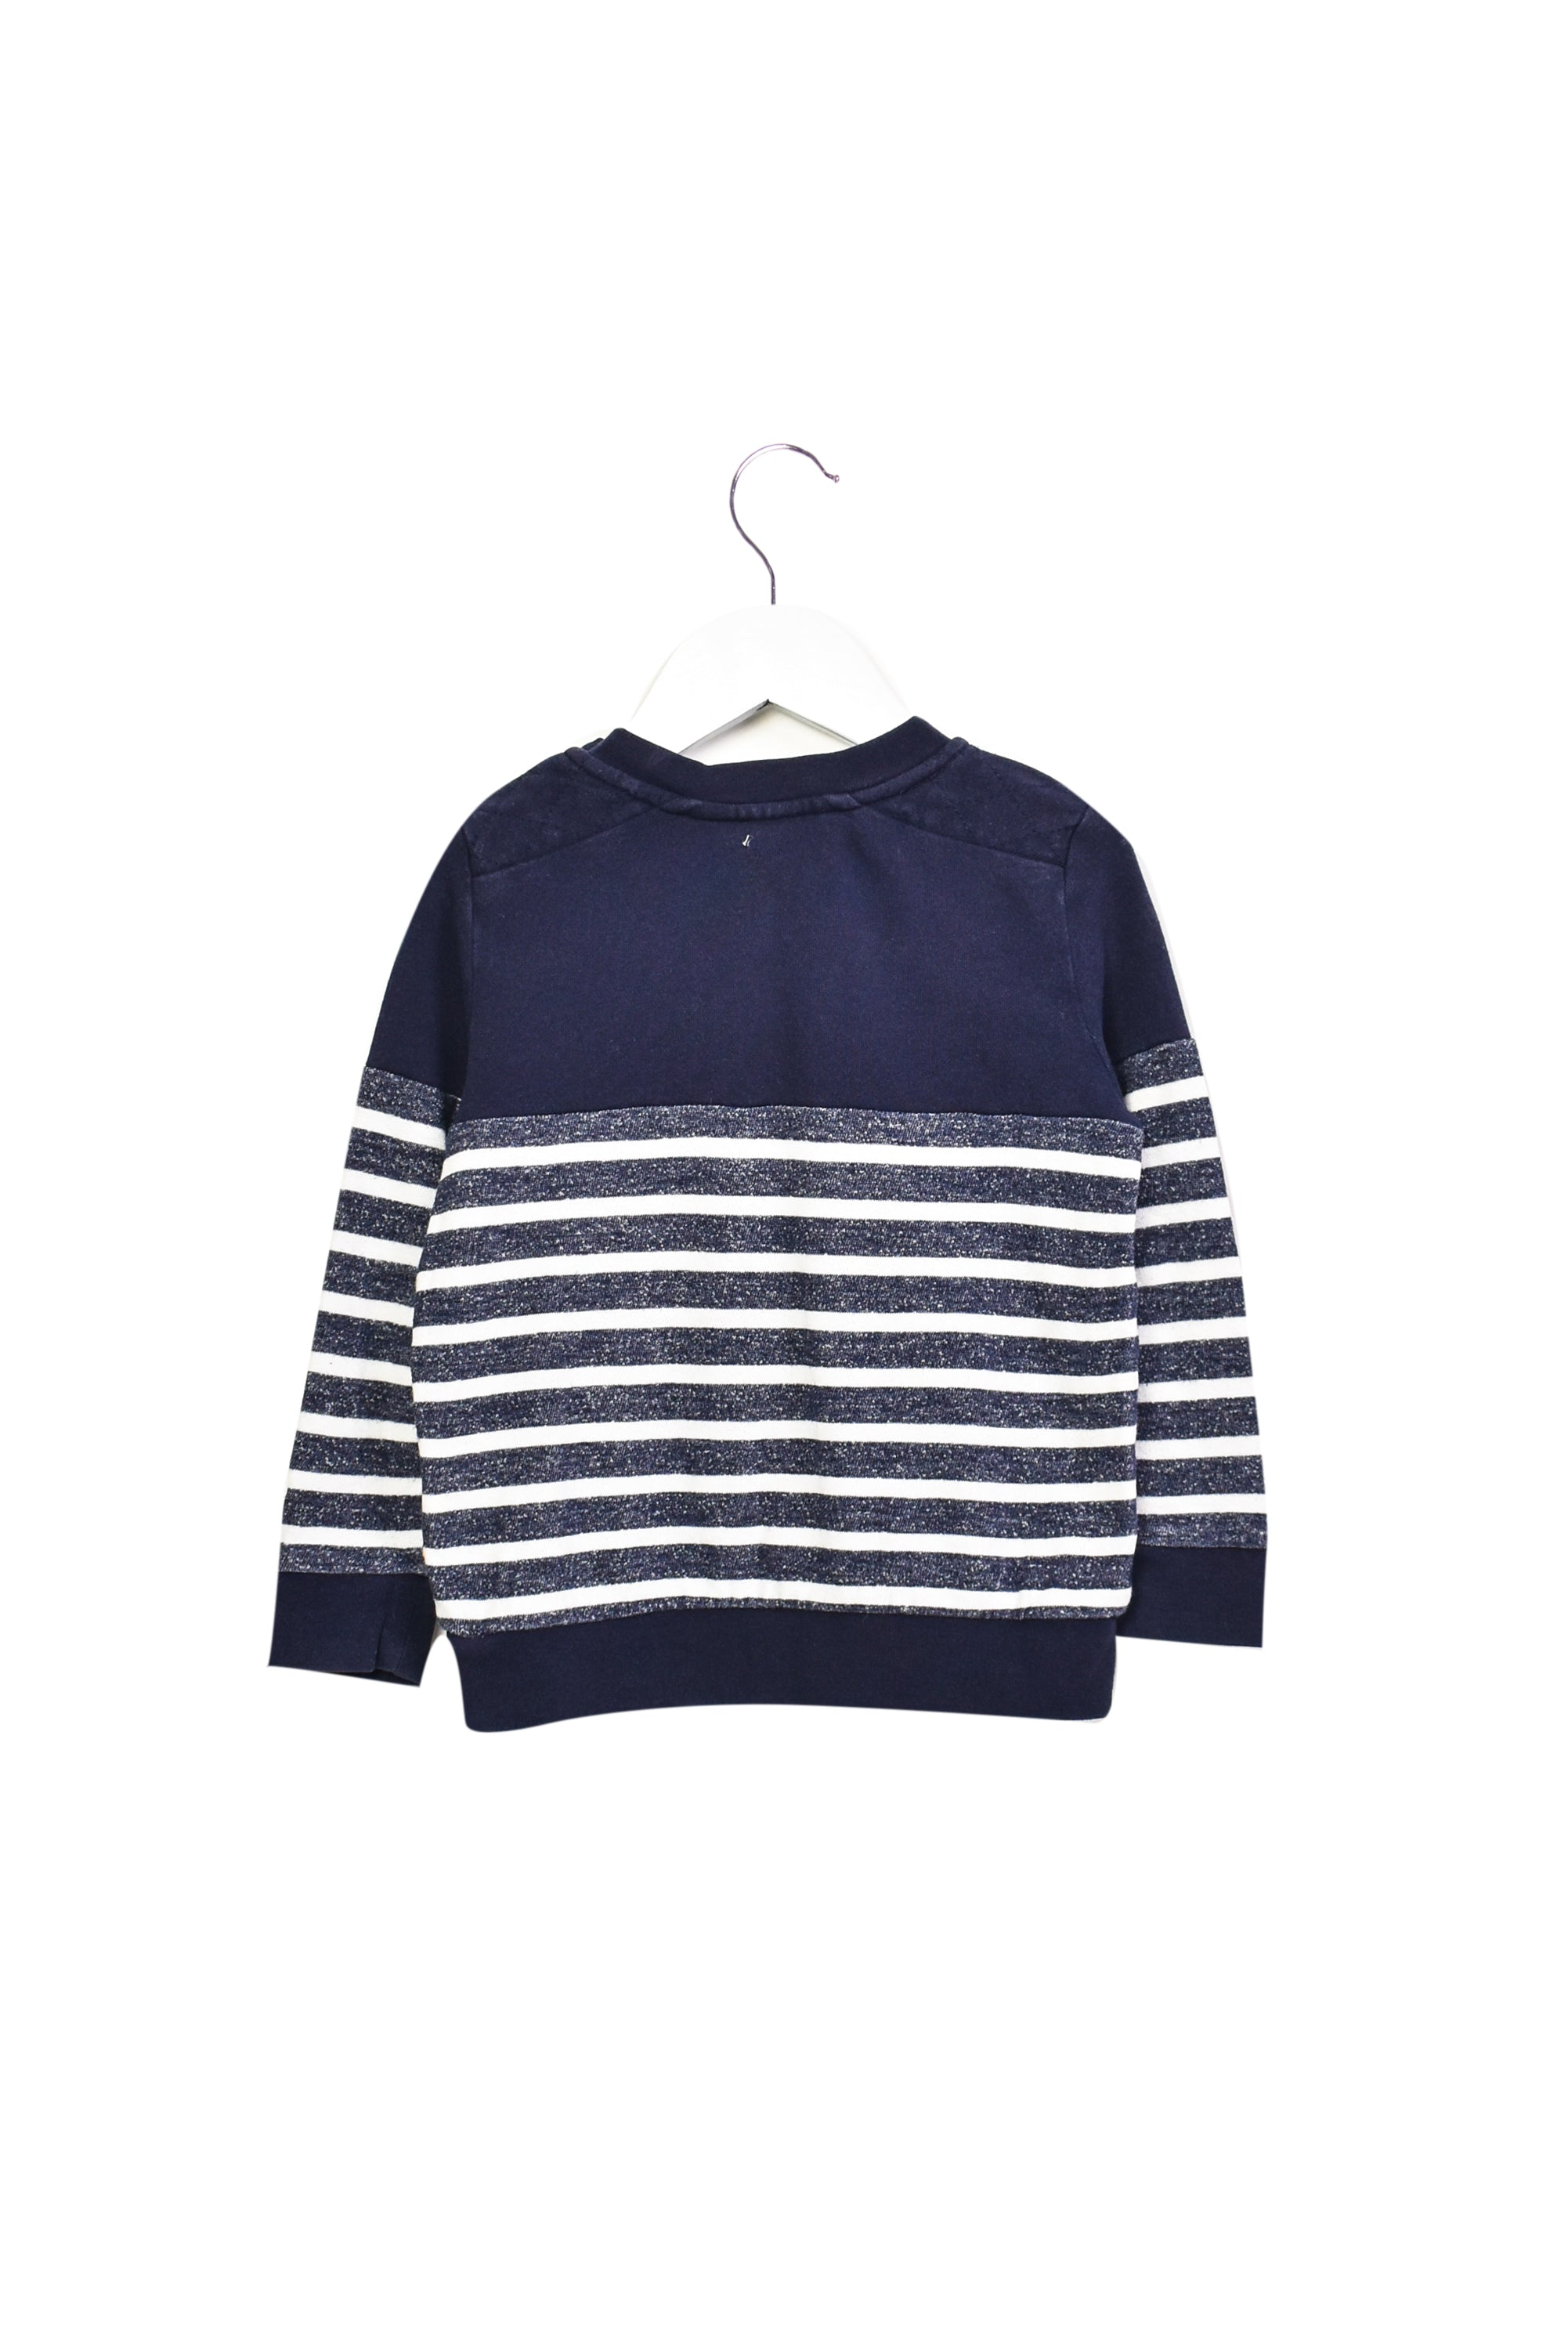 10014391 Seed Baby ~ Sweatshirt 1-2T at Retykle